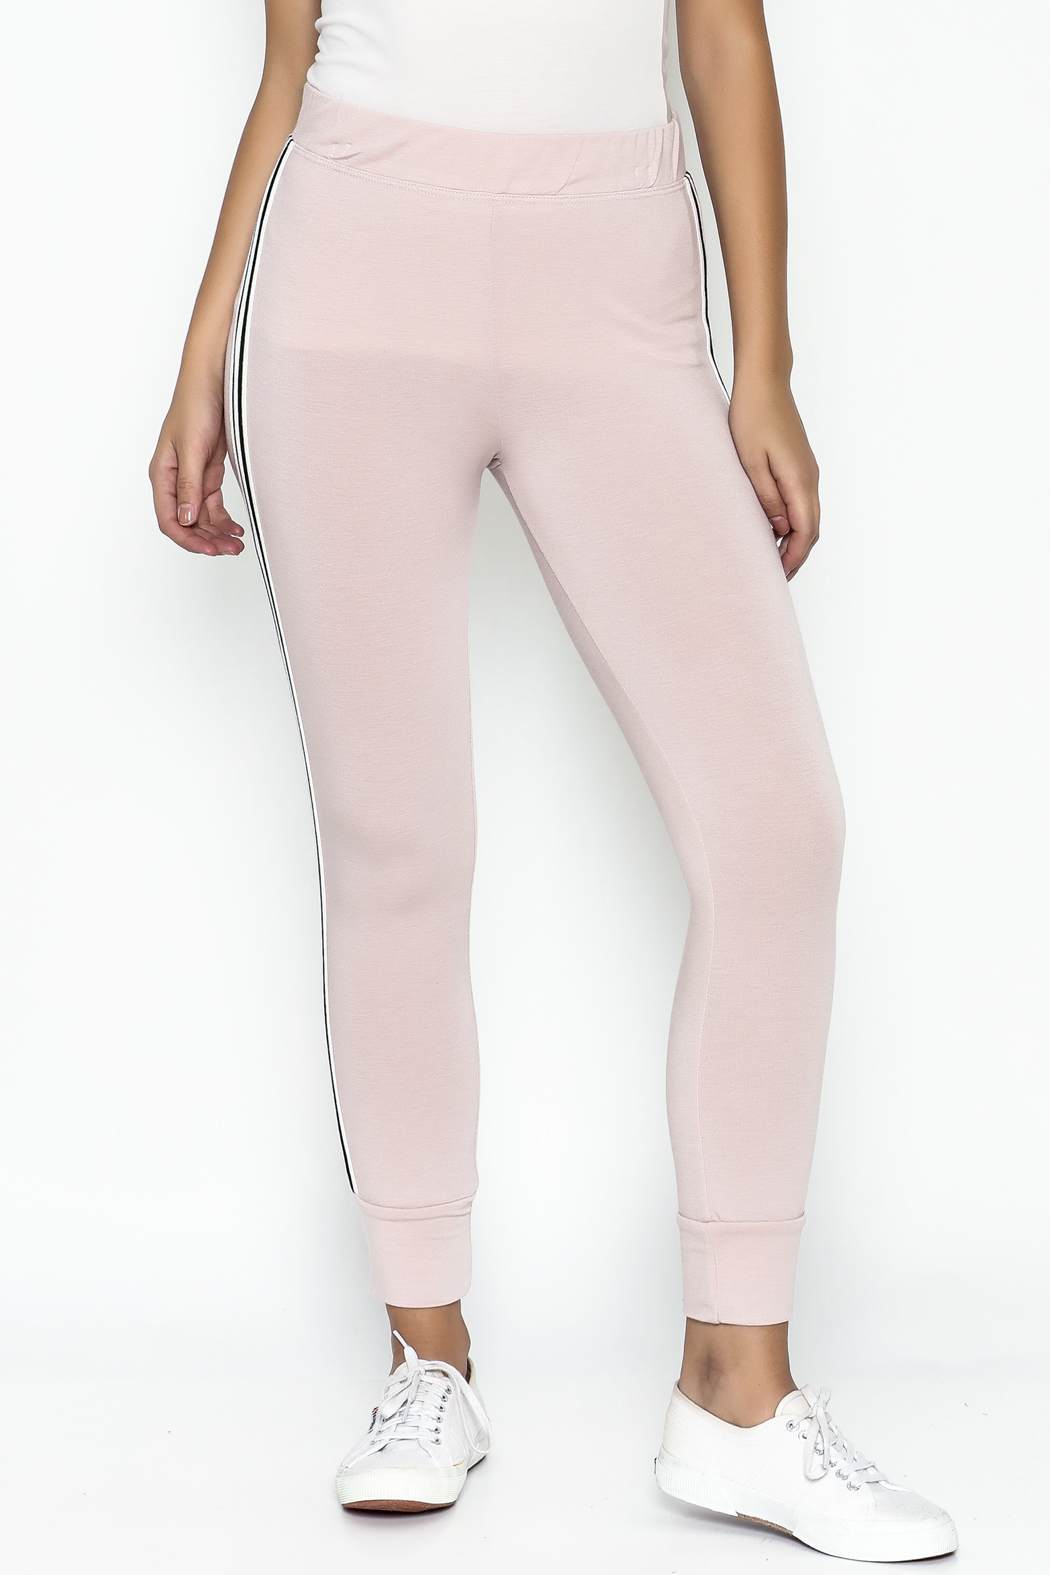 Happy Days USA Millennial Pink Jogger Pants - Main Image